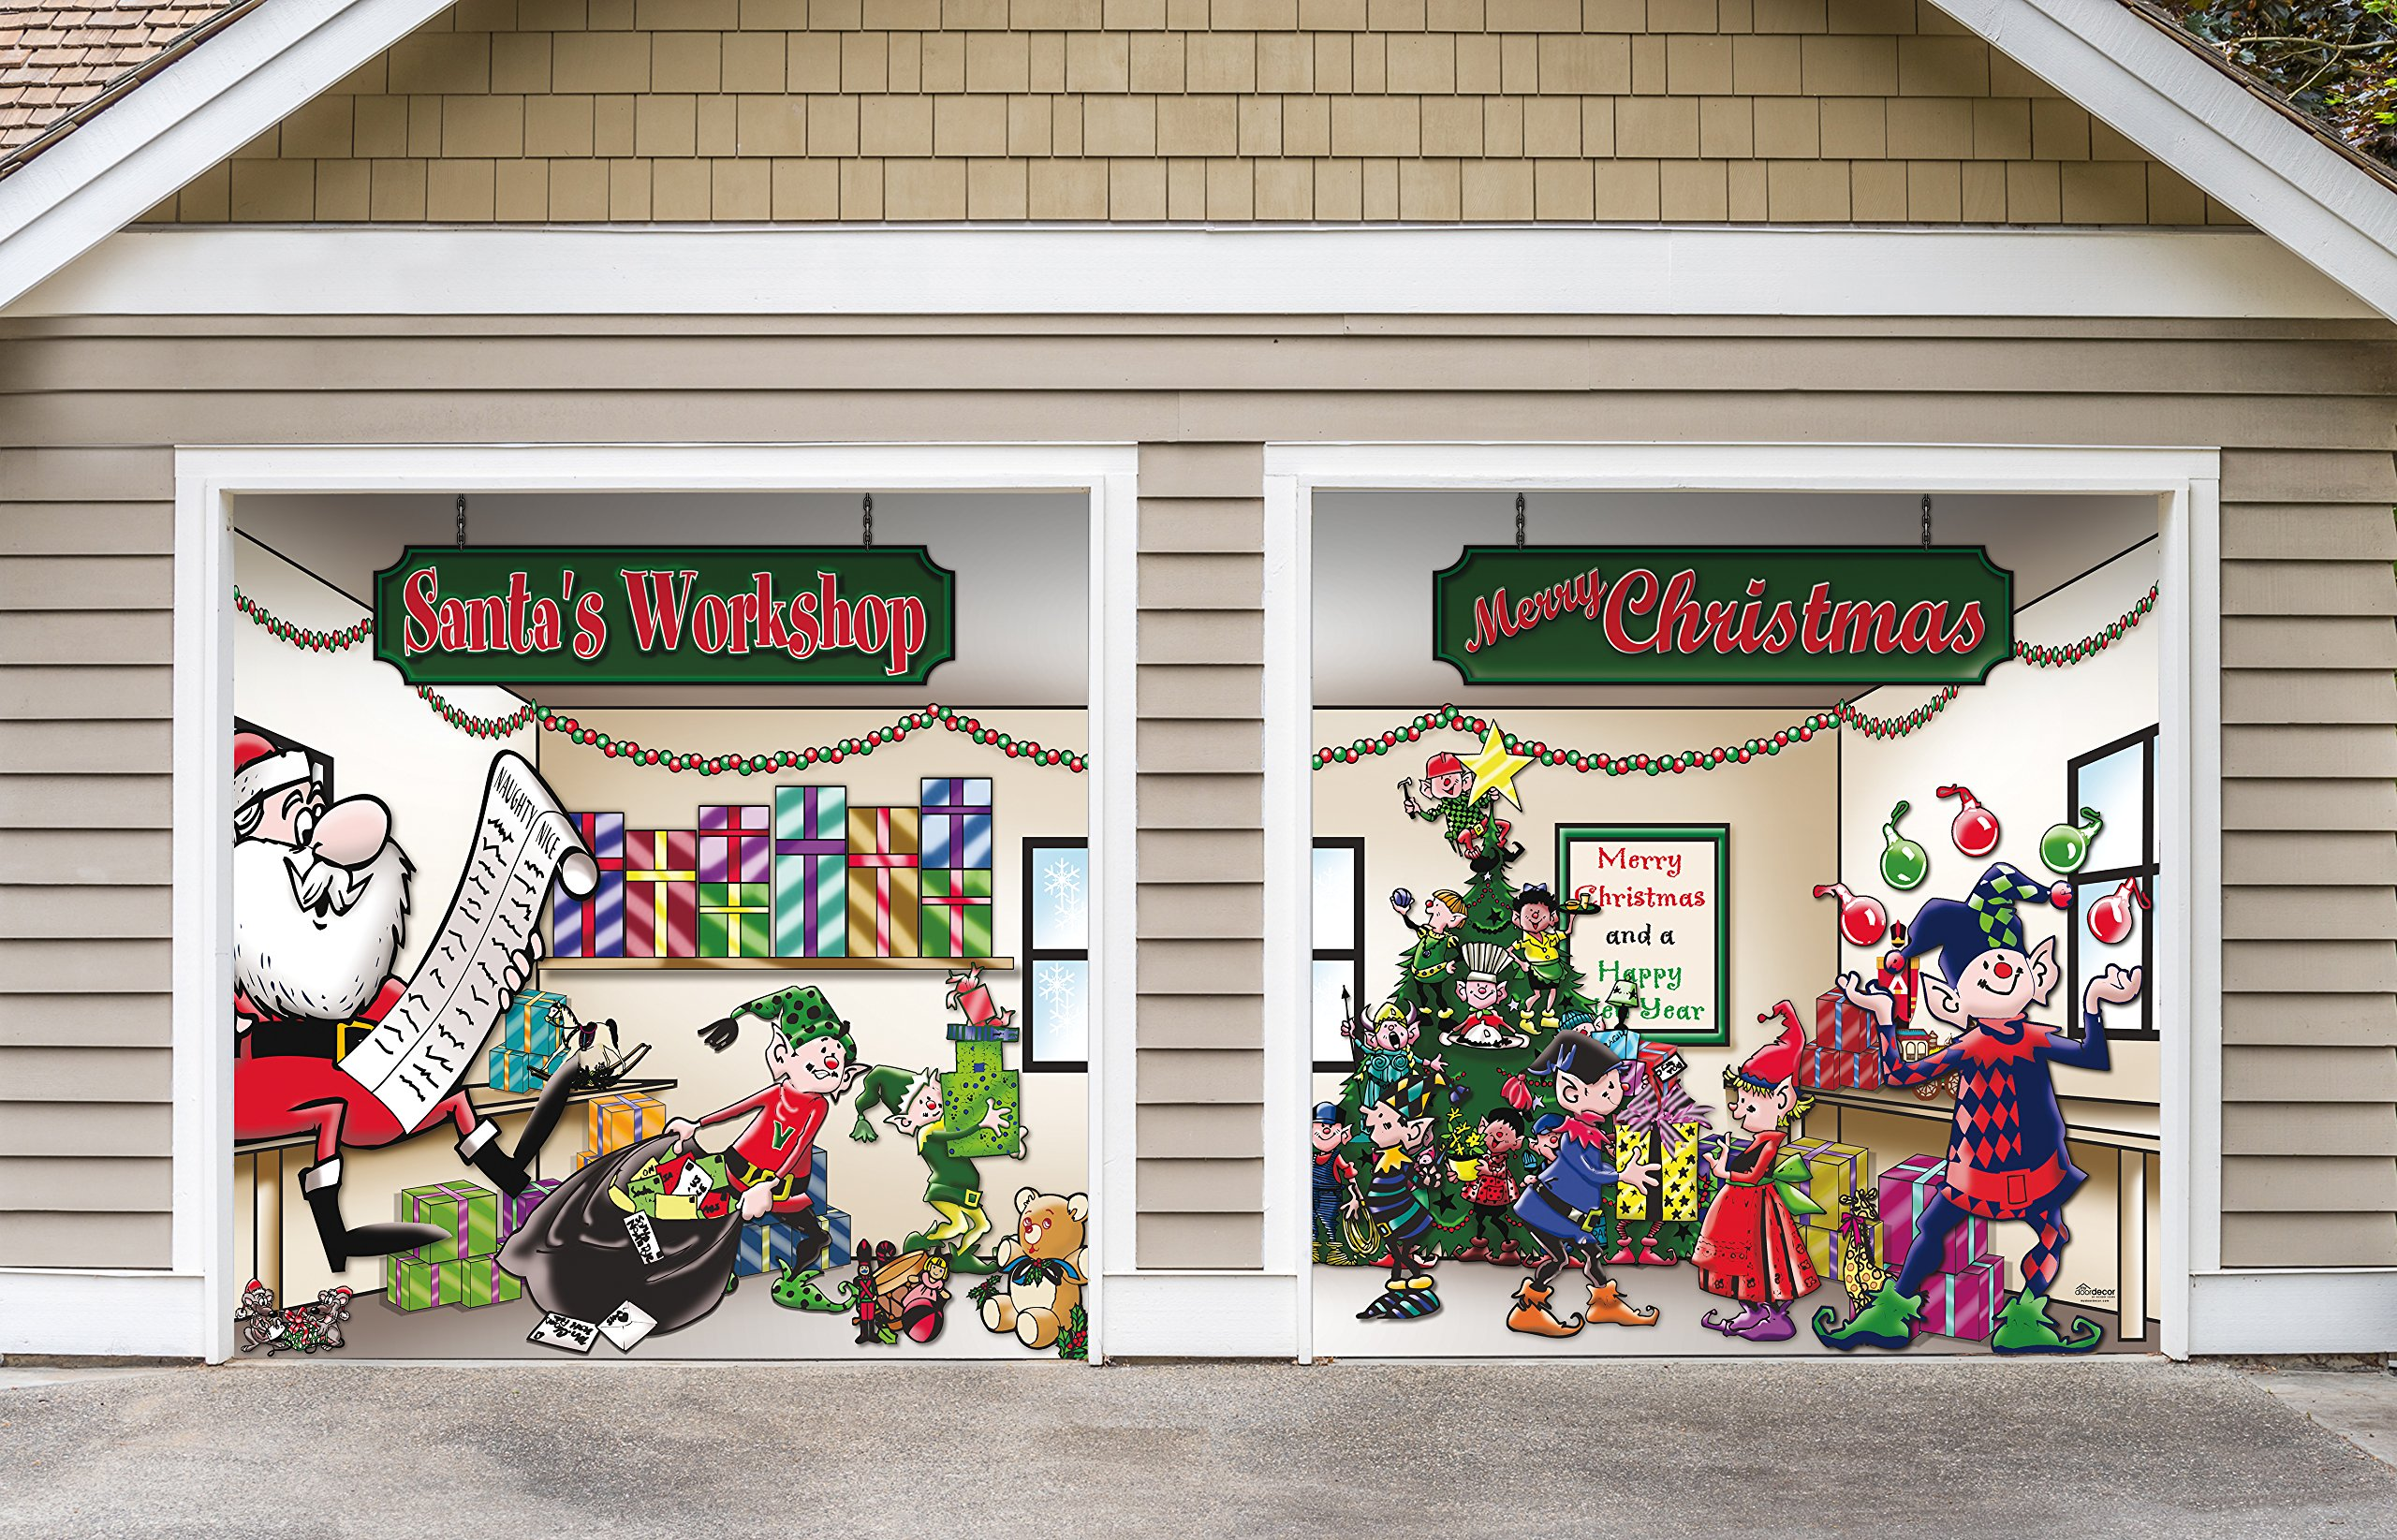 Outdoor Christmas Holiday Garage Door Banner Cover Mural Décoration - Santa's Workshop - Outdoor Holiday 2 Car Split Garage Door Banner Décor Sign , Two 7'x 8' Graphic Kits by Victory Corps